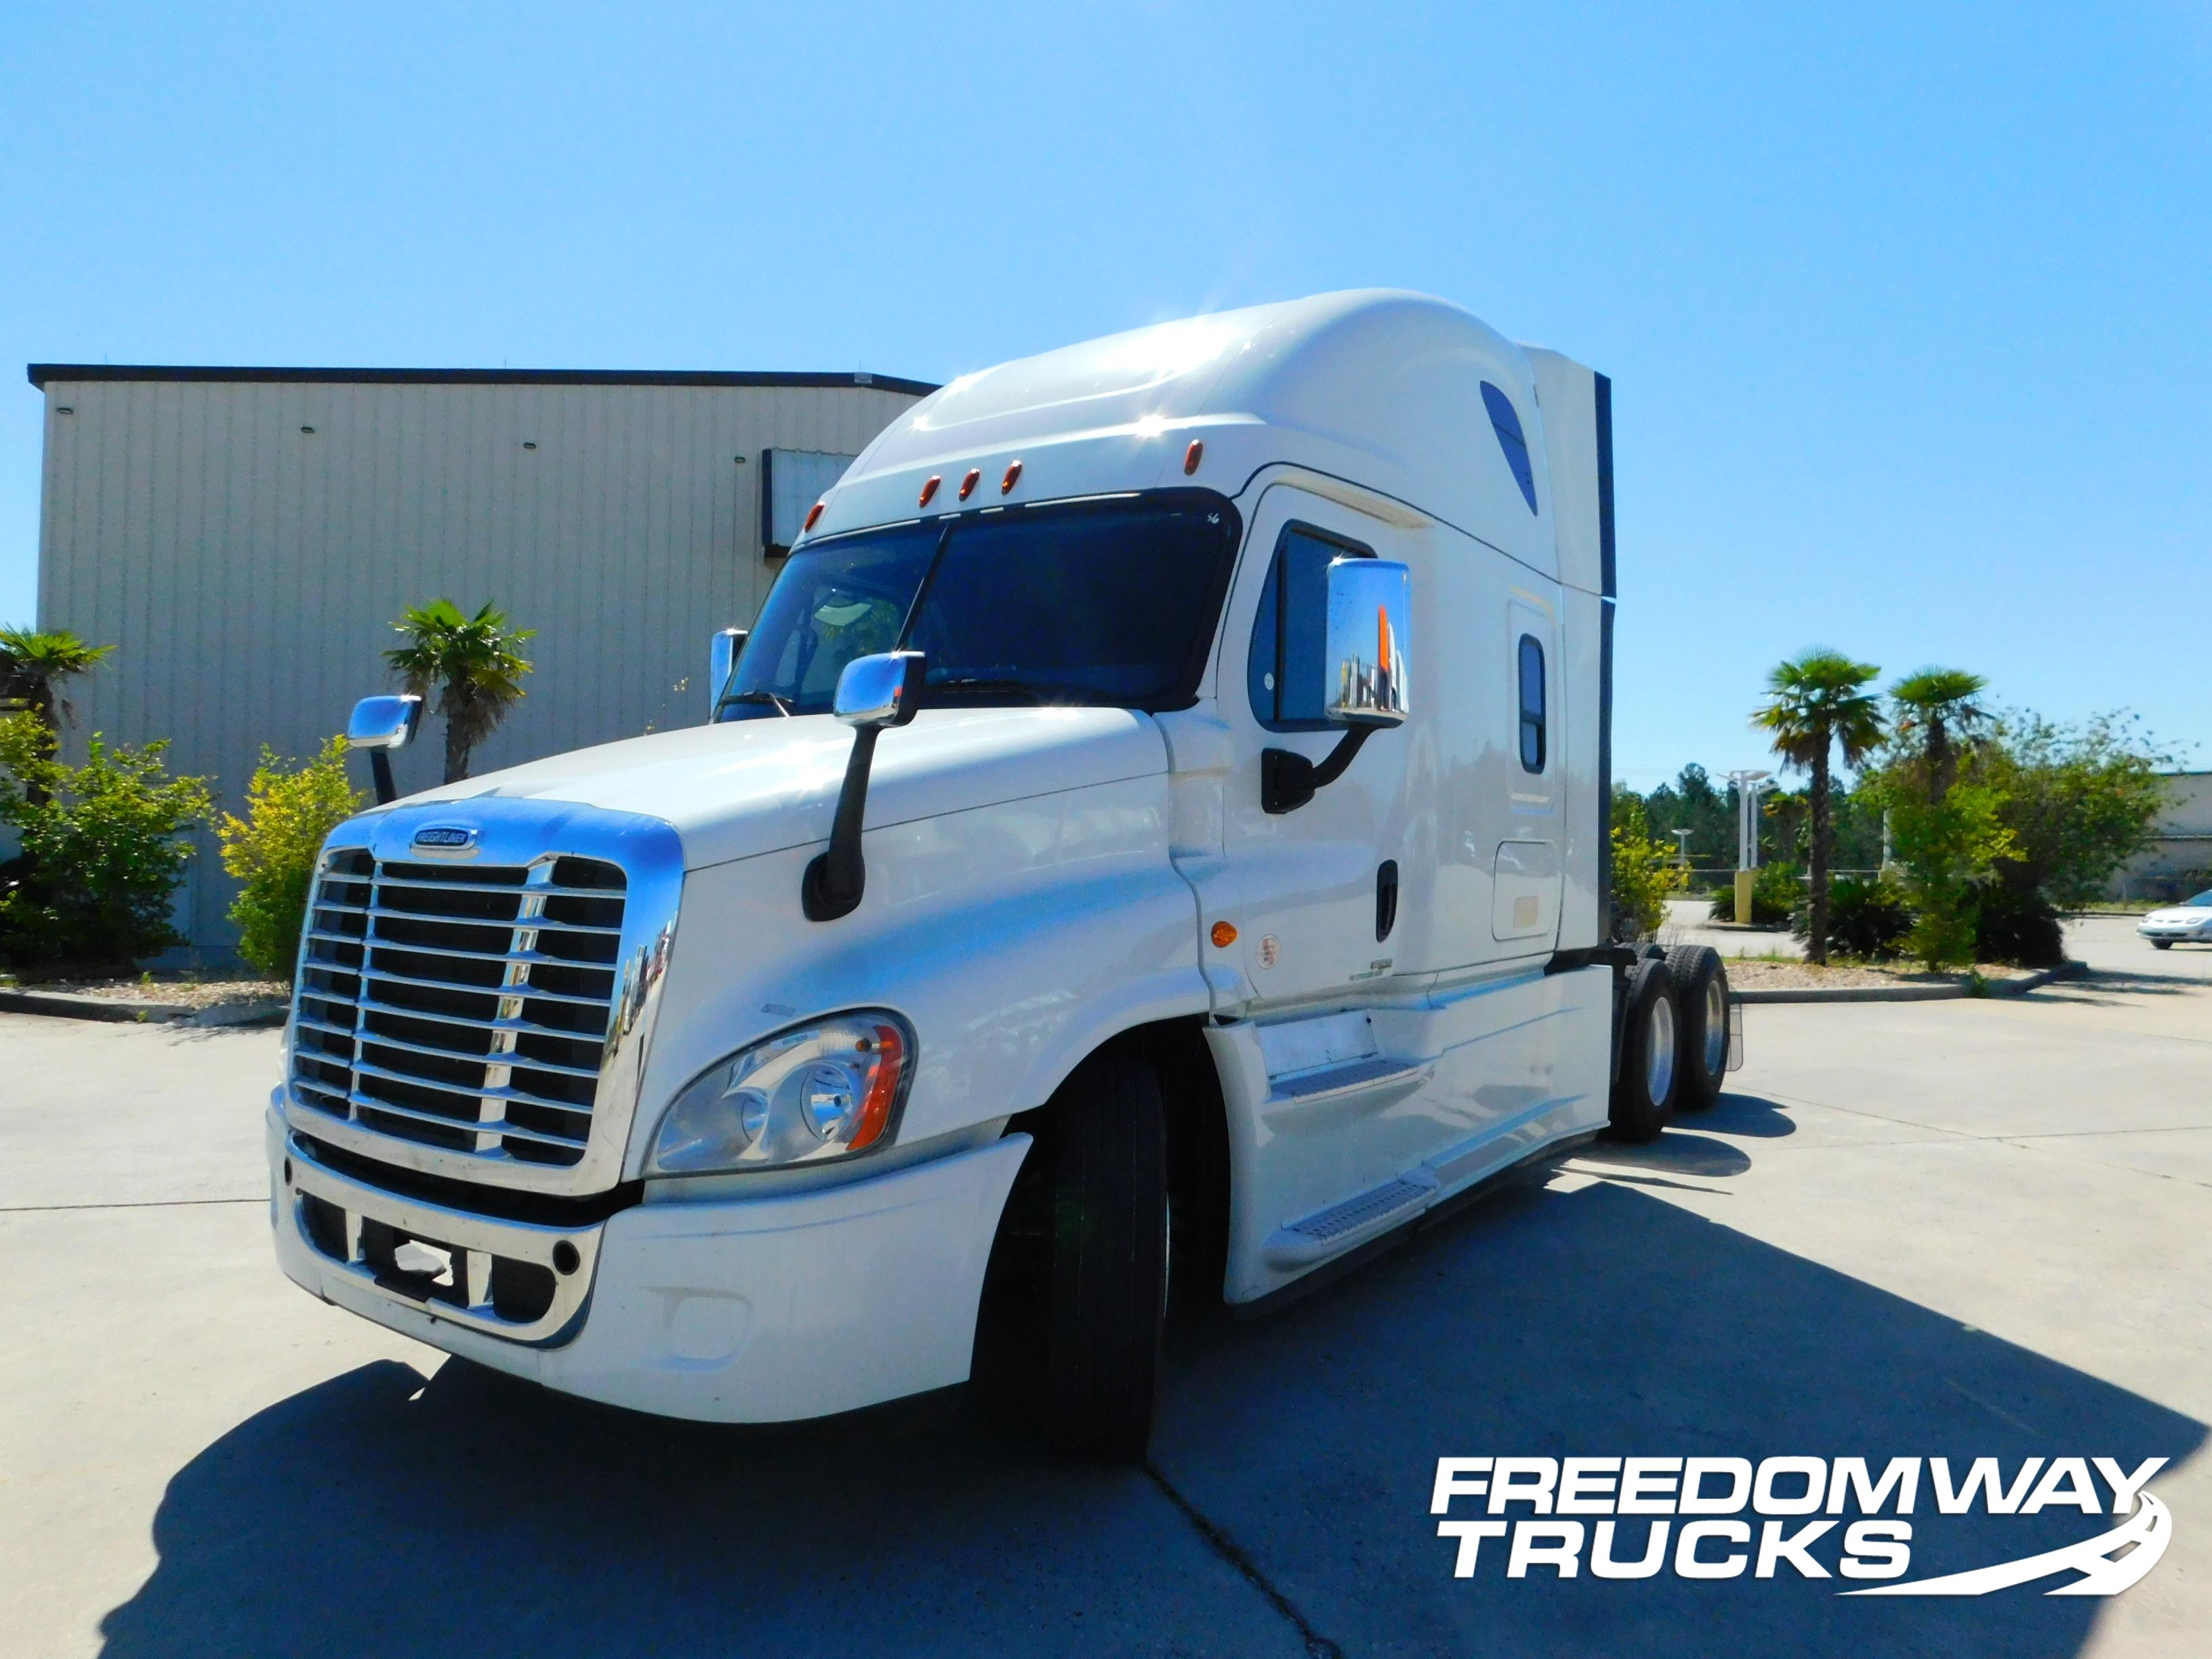 USED 2015 FREIGHTLINER CASCADIA DAYCAB TRUCK #180070